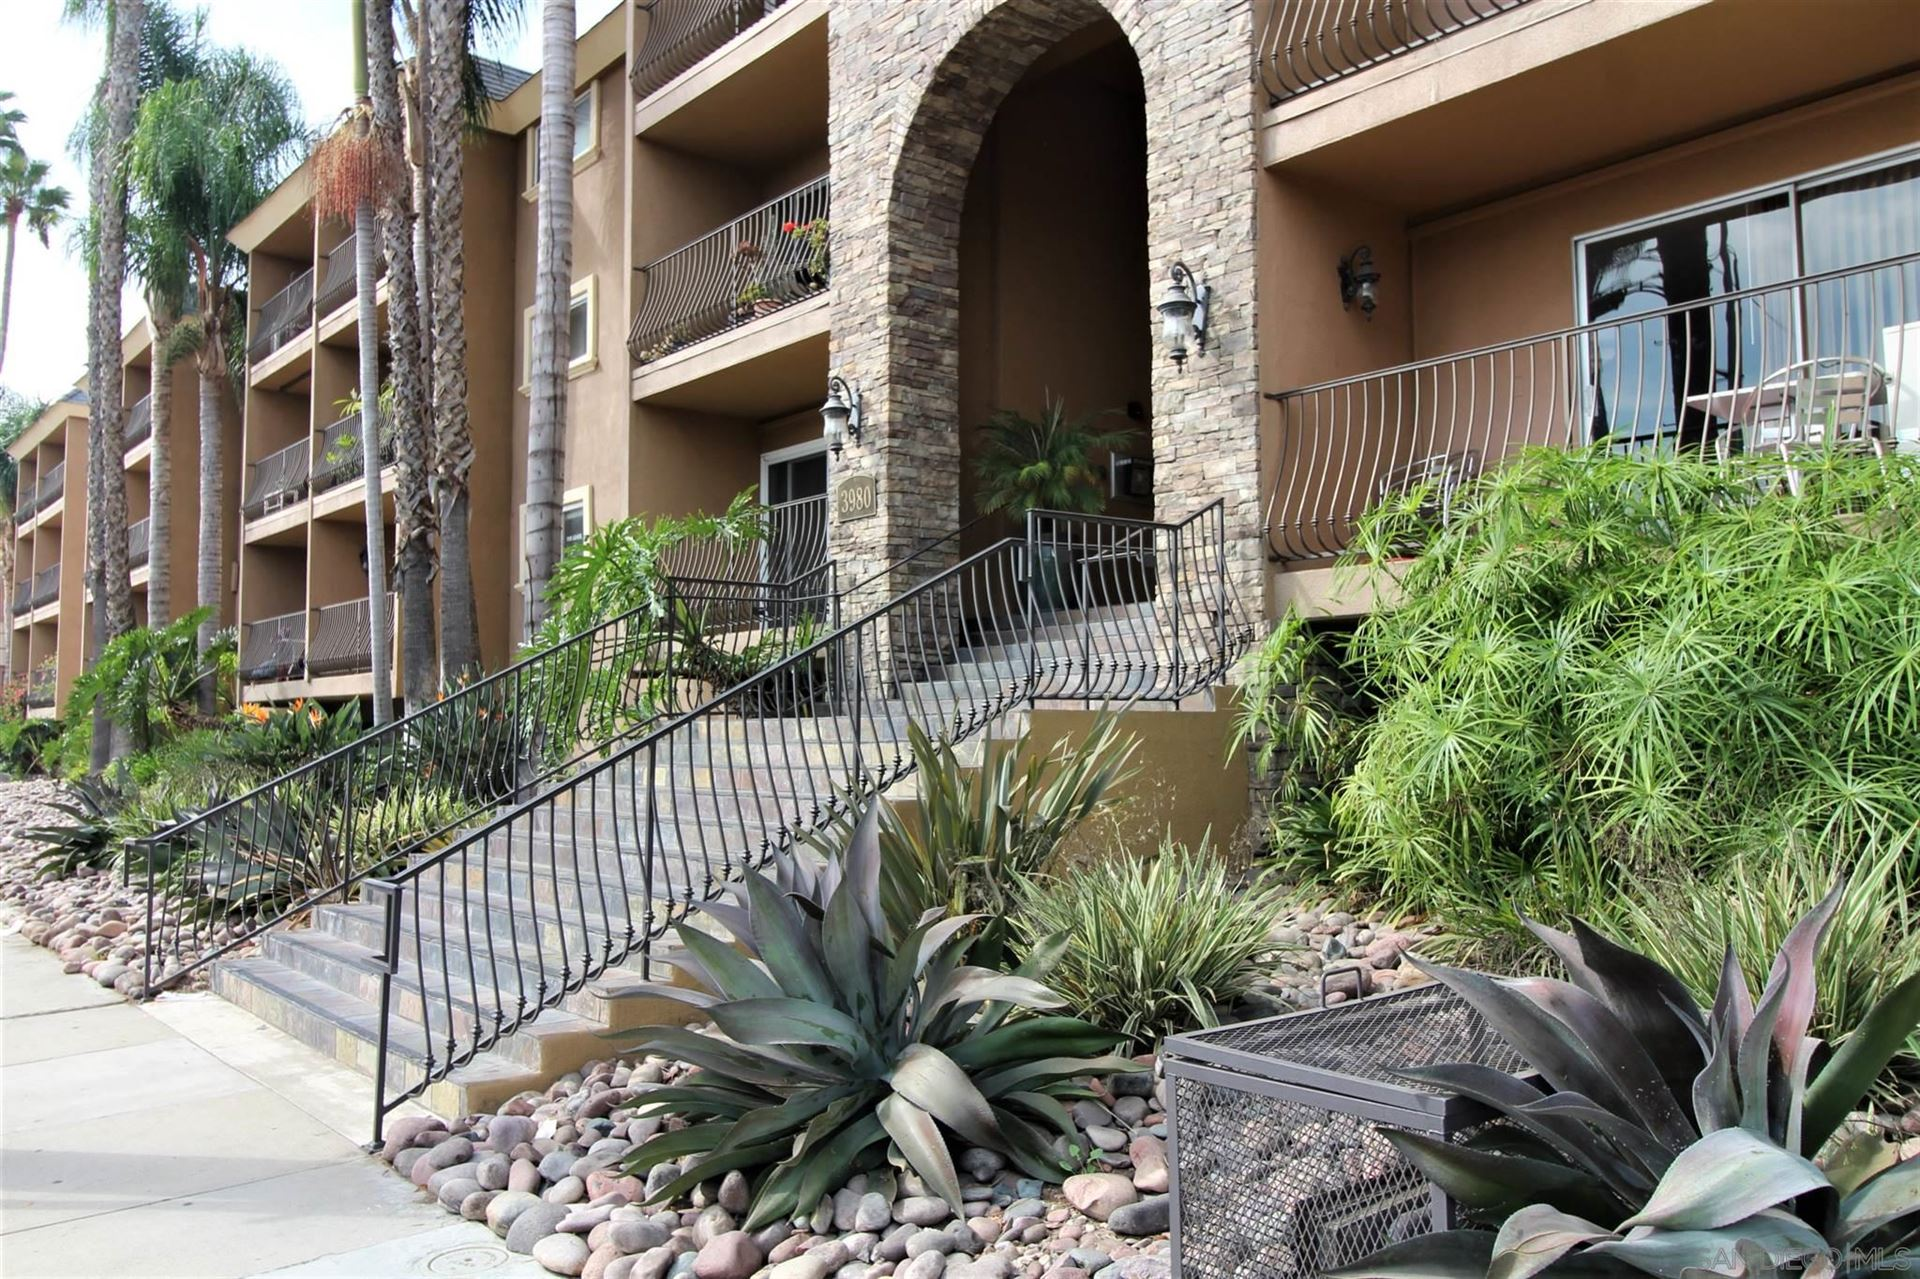 Photo for 3980 8Th Ave #216, San Diego, CA 92103 (MLS # 200052221)